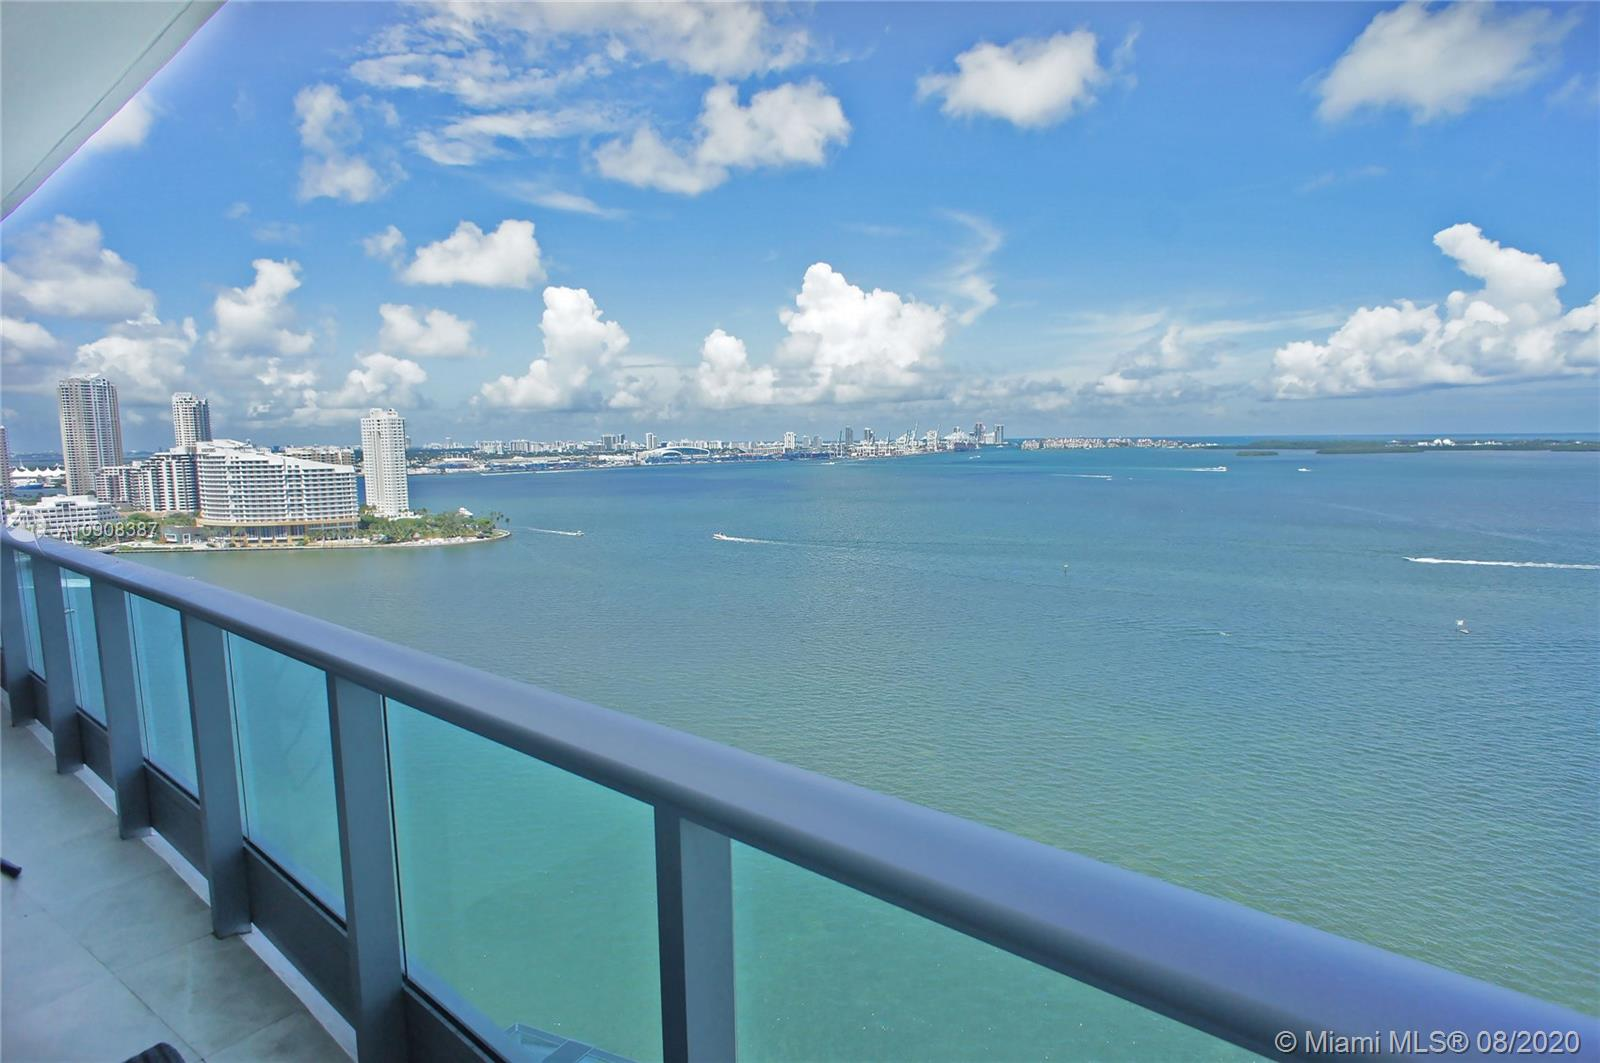 Enjoy endless ocean and bay views! Jade offers you a Luxury, Resort-style living. 2Bed/3 Bath + spacious enclosed den with closet and full bathroom. One of Brickell's most Luxurious residences of advanced technology.  The state-of-the-art kitchen is decorated with Italian designer cabinetry, stainless steel Miele appliances, a wine cooler, cappuccino maker. Marble baths, state-of-the-art security system, Infinity edge pool, Sauna, steam room, fitness center, European-style resort spa, racquetball, 24 Hr. concierge services. Seventh-floor Resort Deck of 31,200 bay front Sq ft.  Security-controlled elevator access.  Elegantly appointed entrance and lobby, Wireless wi-fi. Fully equipped business center. Extra storage.  Centrally located, walking distance to shops, dining, and entertainment.